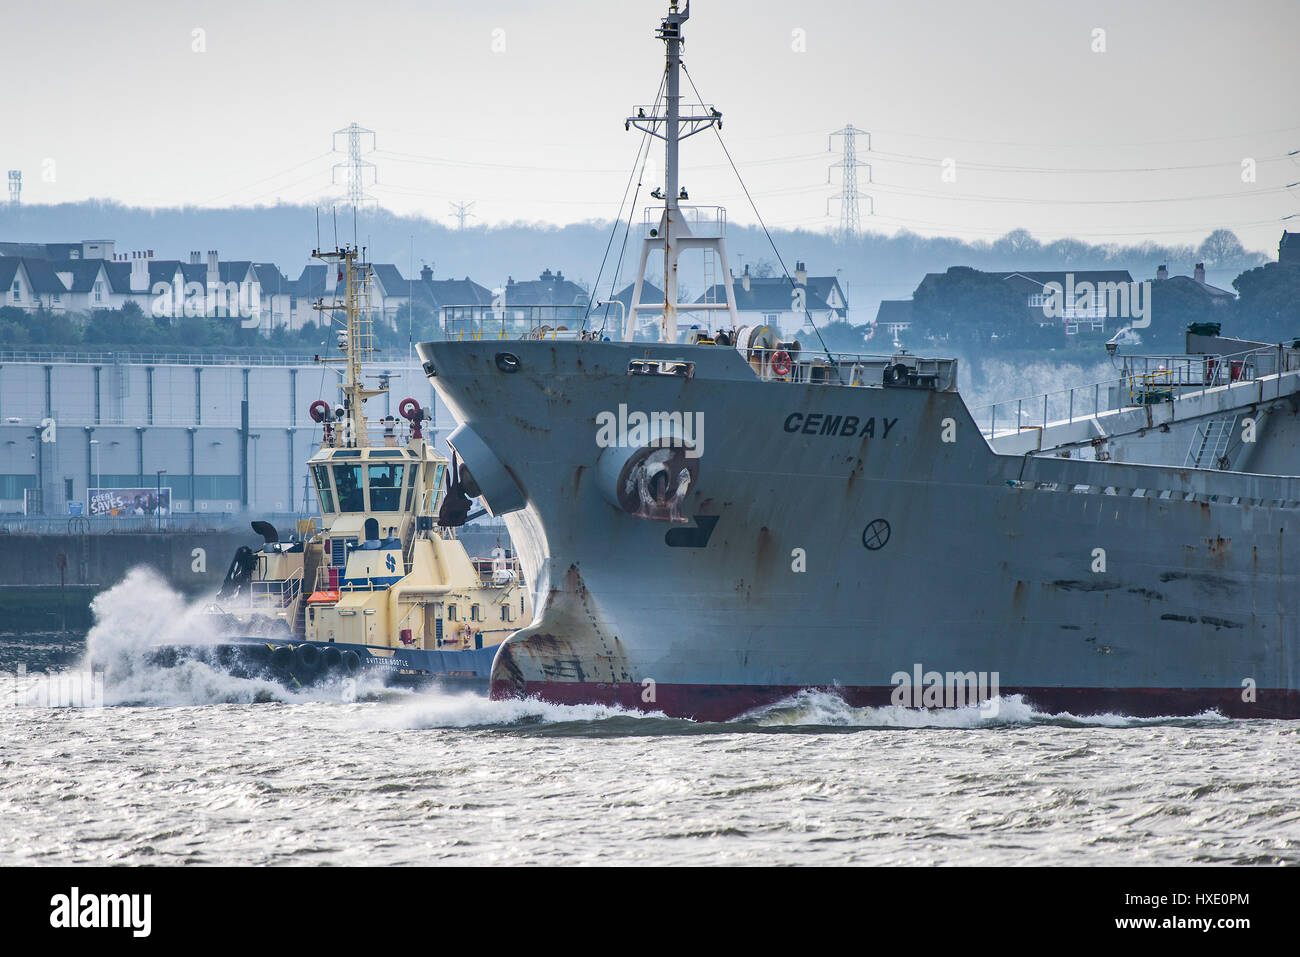 Ships Shipping Tug Vessels Svitzer Bootle Assisting Cembay Cement Carrier River Thames Steaming Downriver Transport - Stock Image